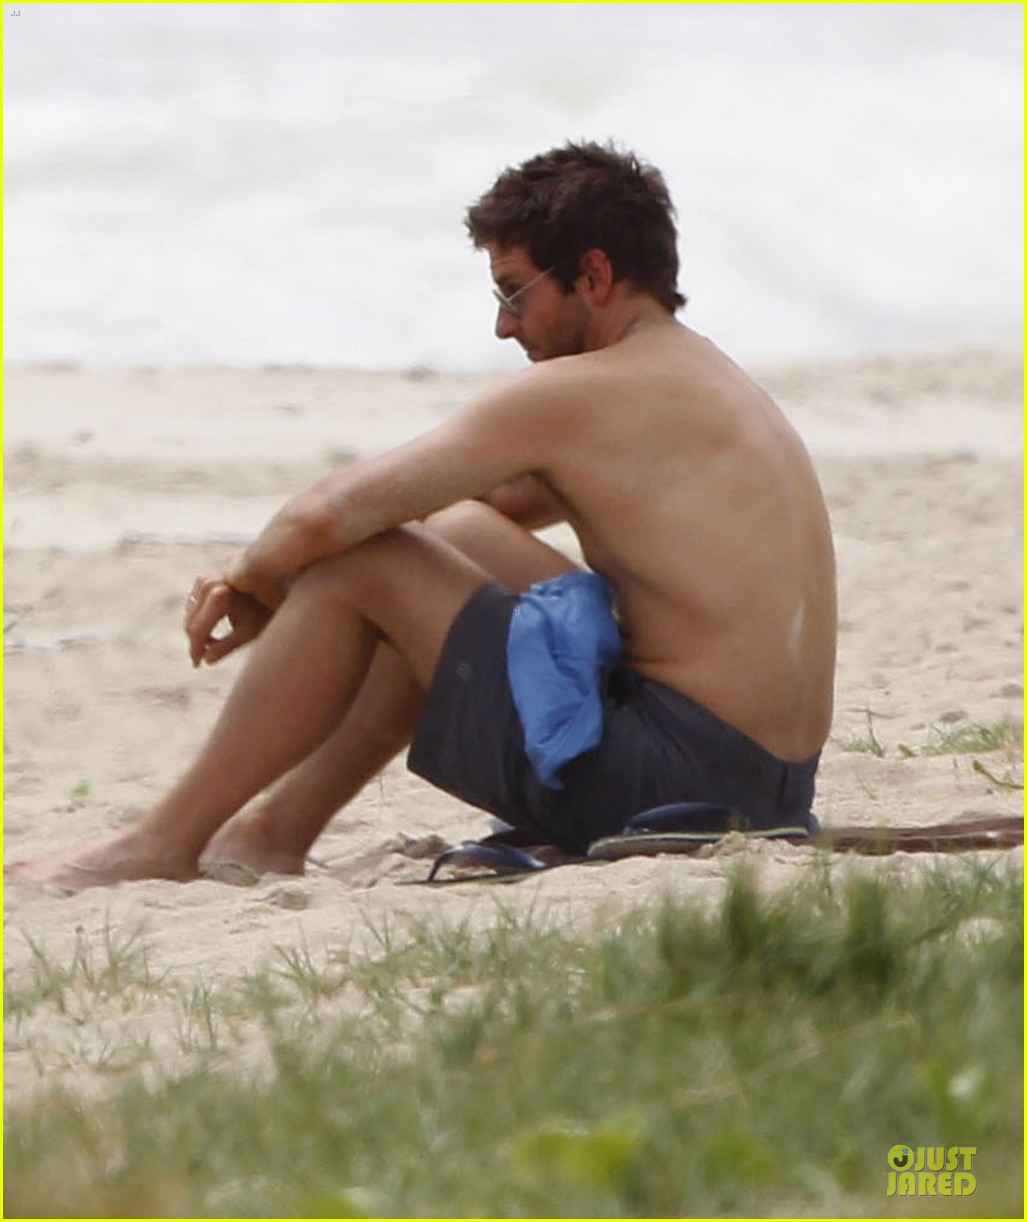 bradley cooper shirtless relaxing beach stud in hawaii 13